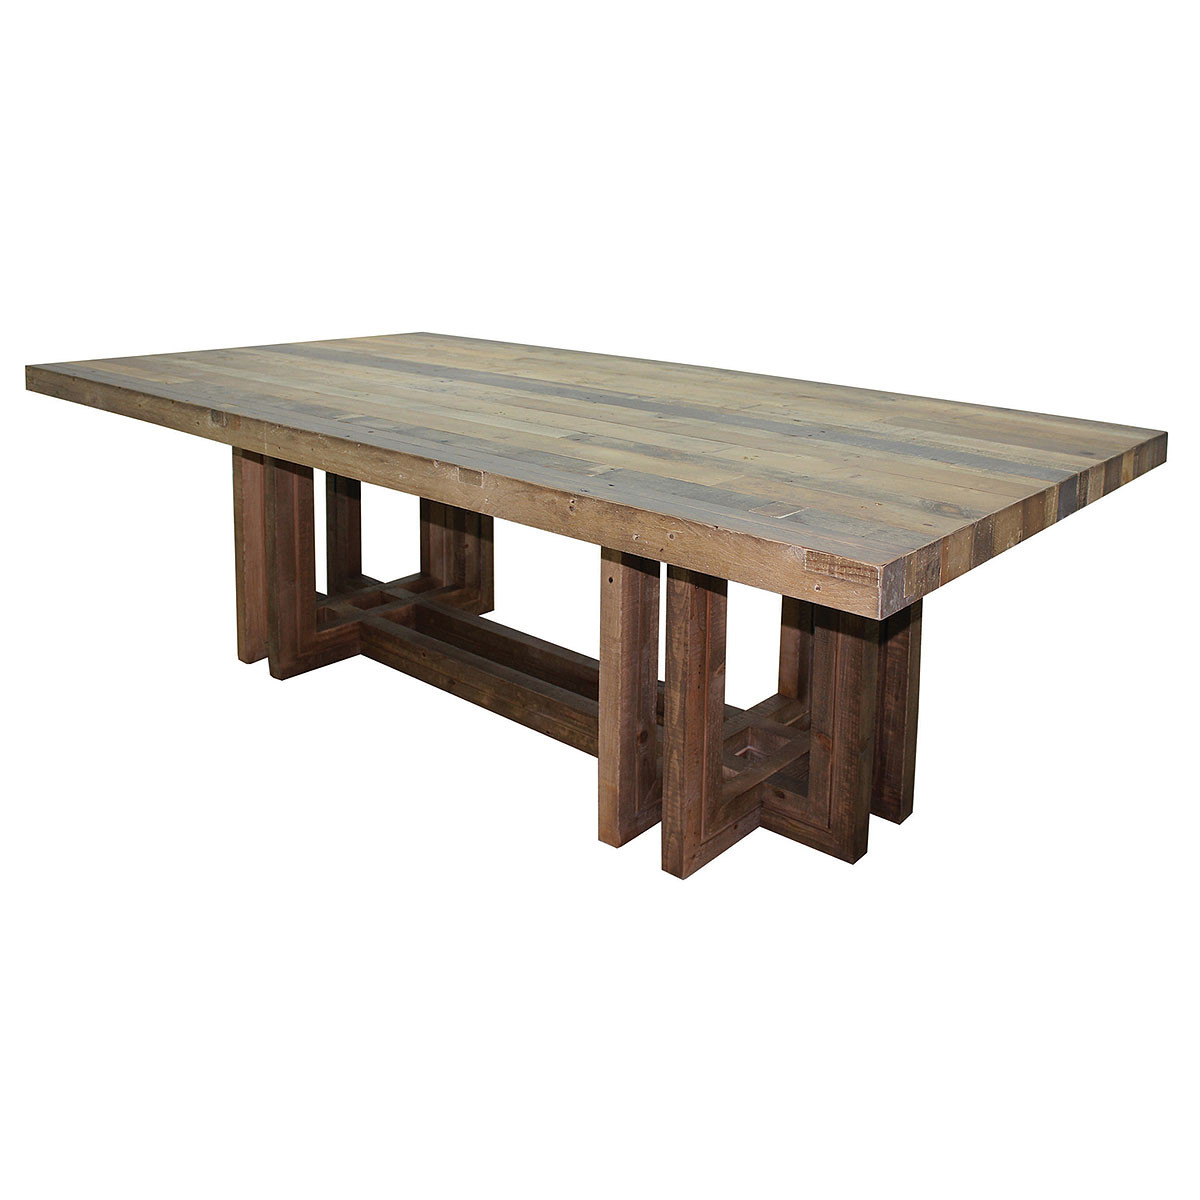 Angora dining table 95 modern reclaimed wood tables for Modern dining table